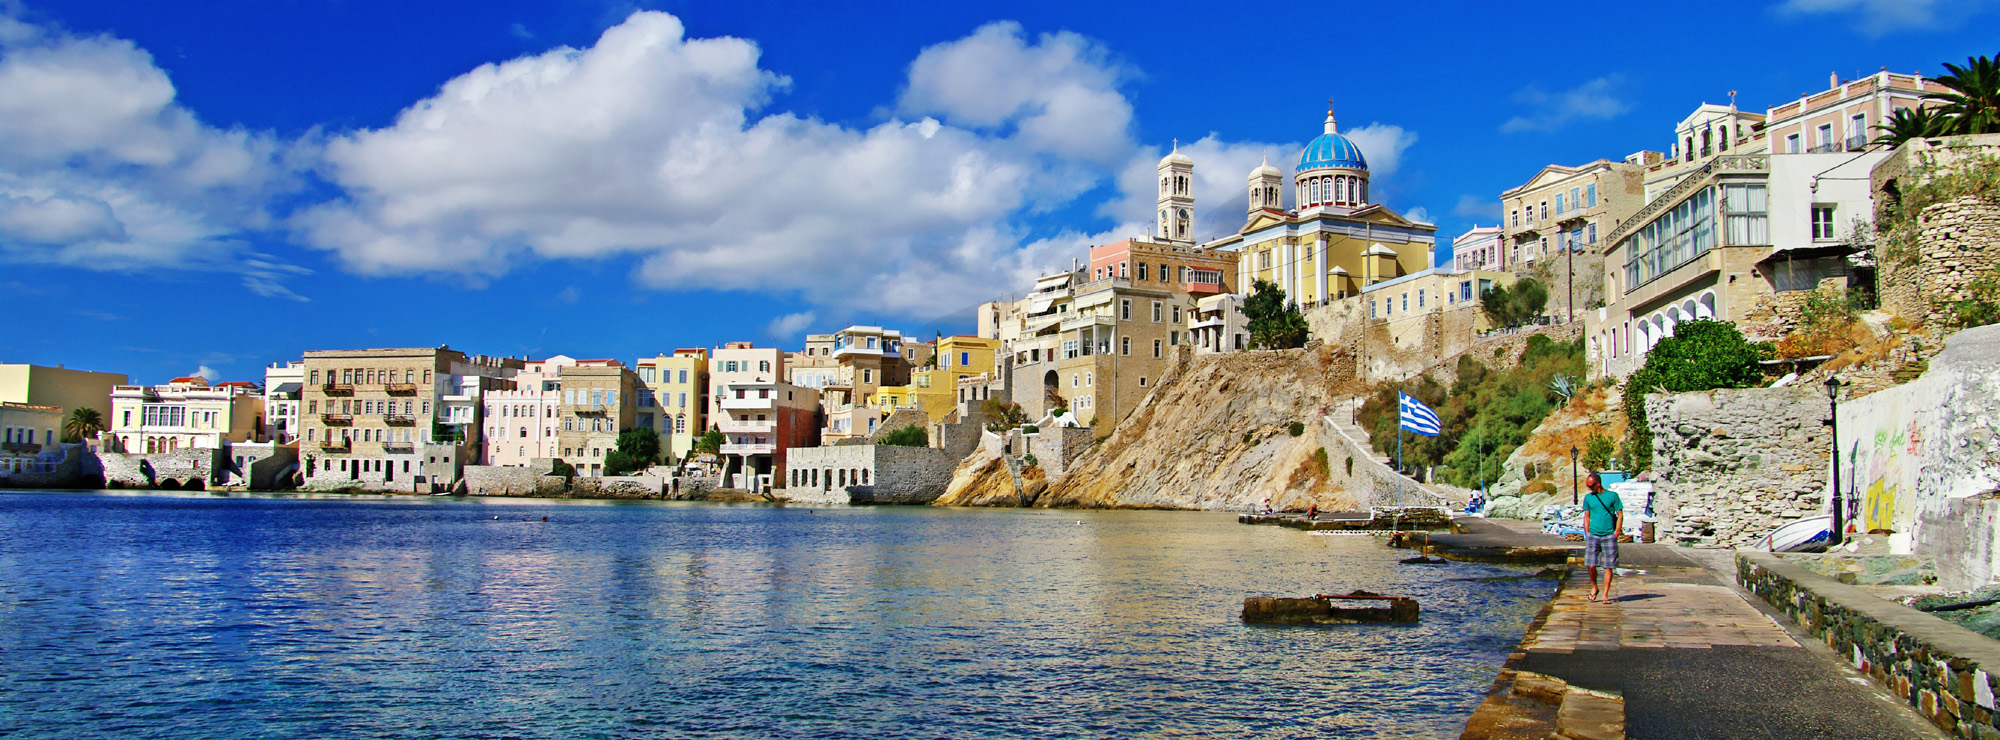 Greece blue sky landscape scenery 51071